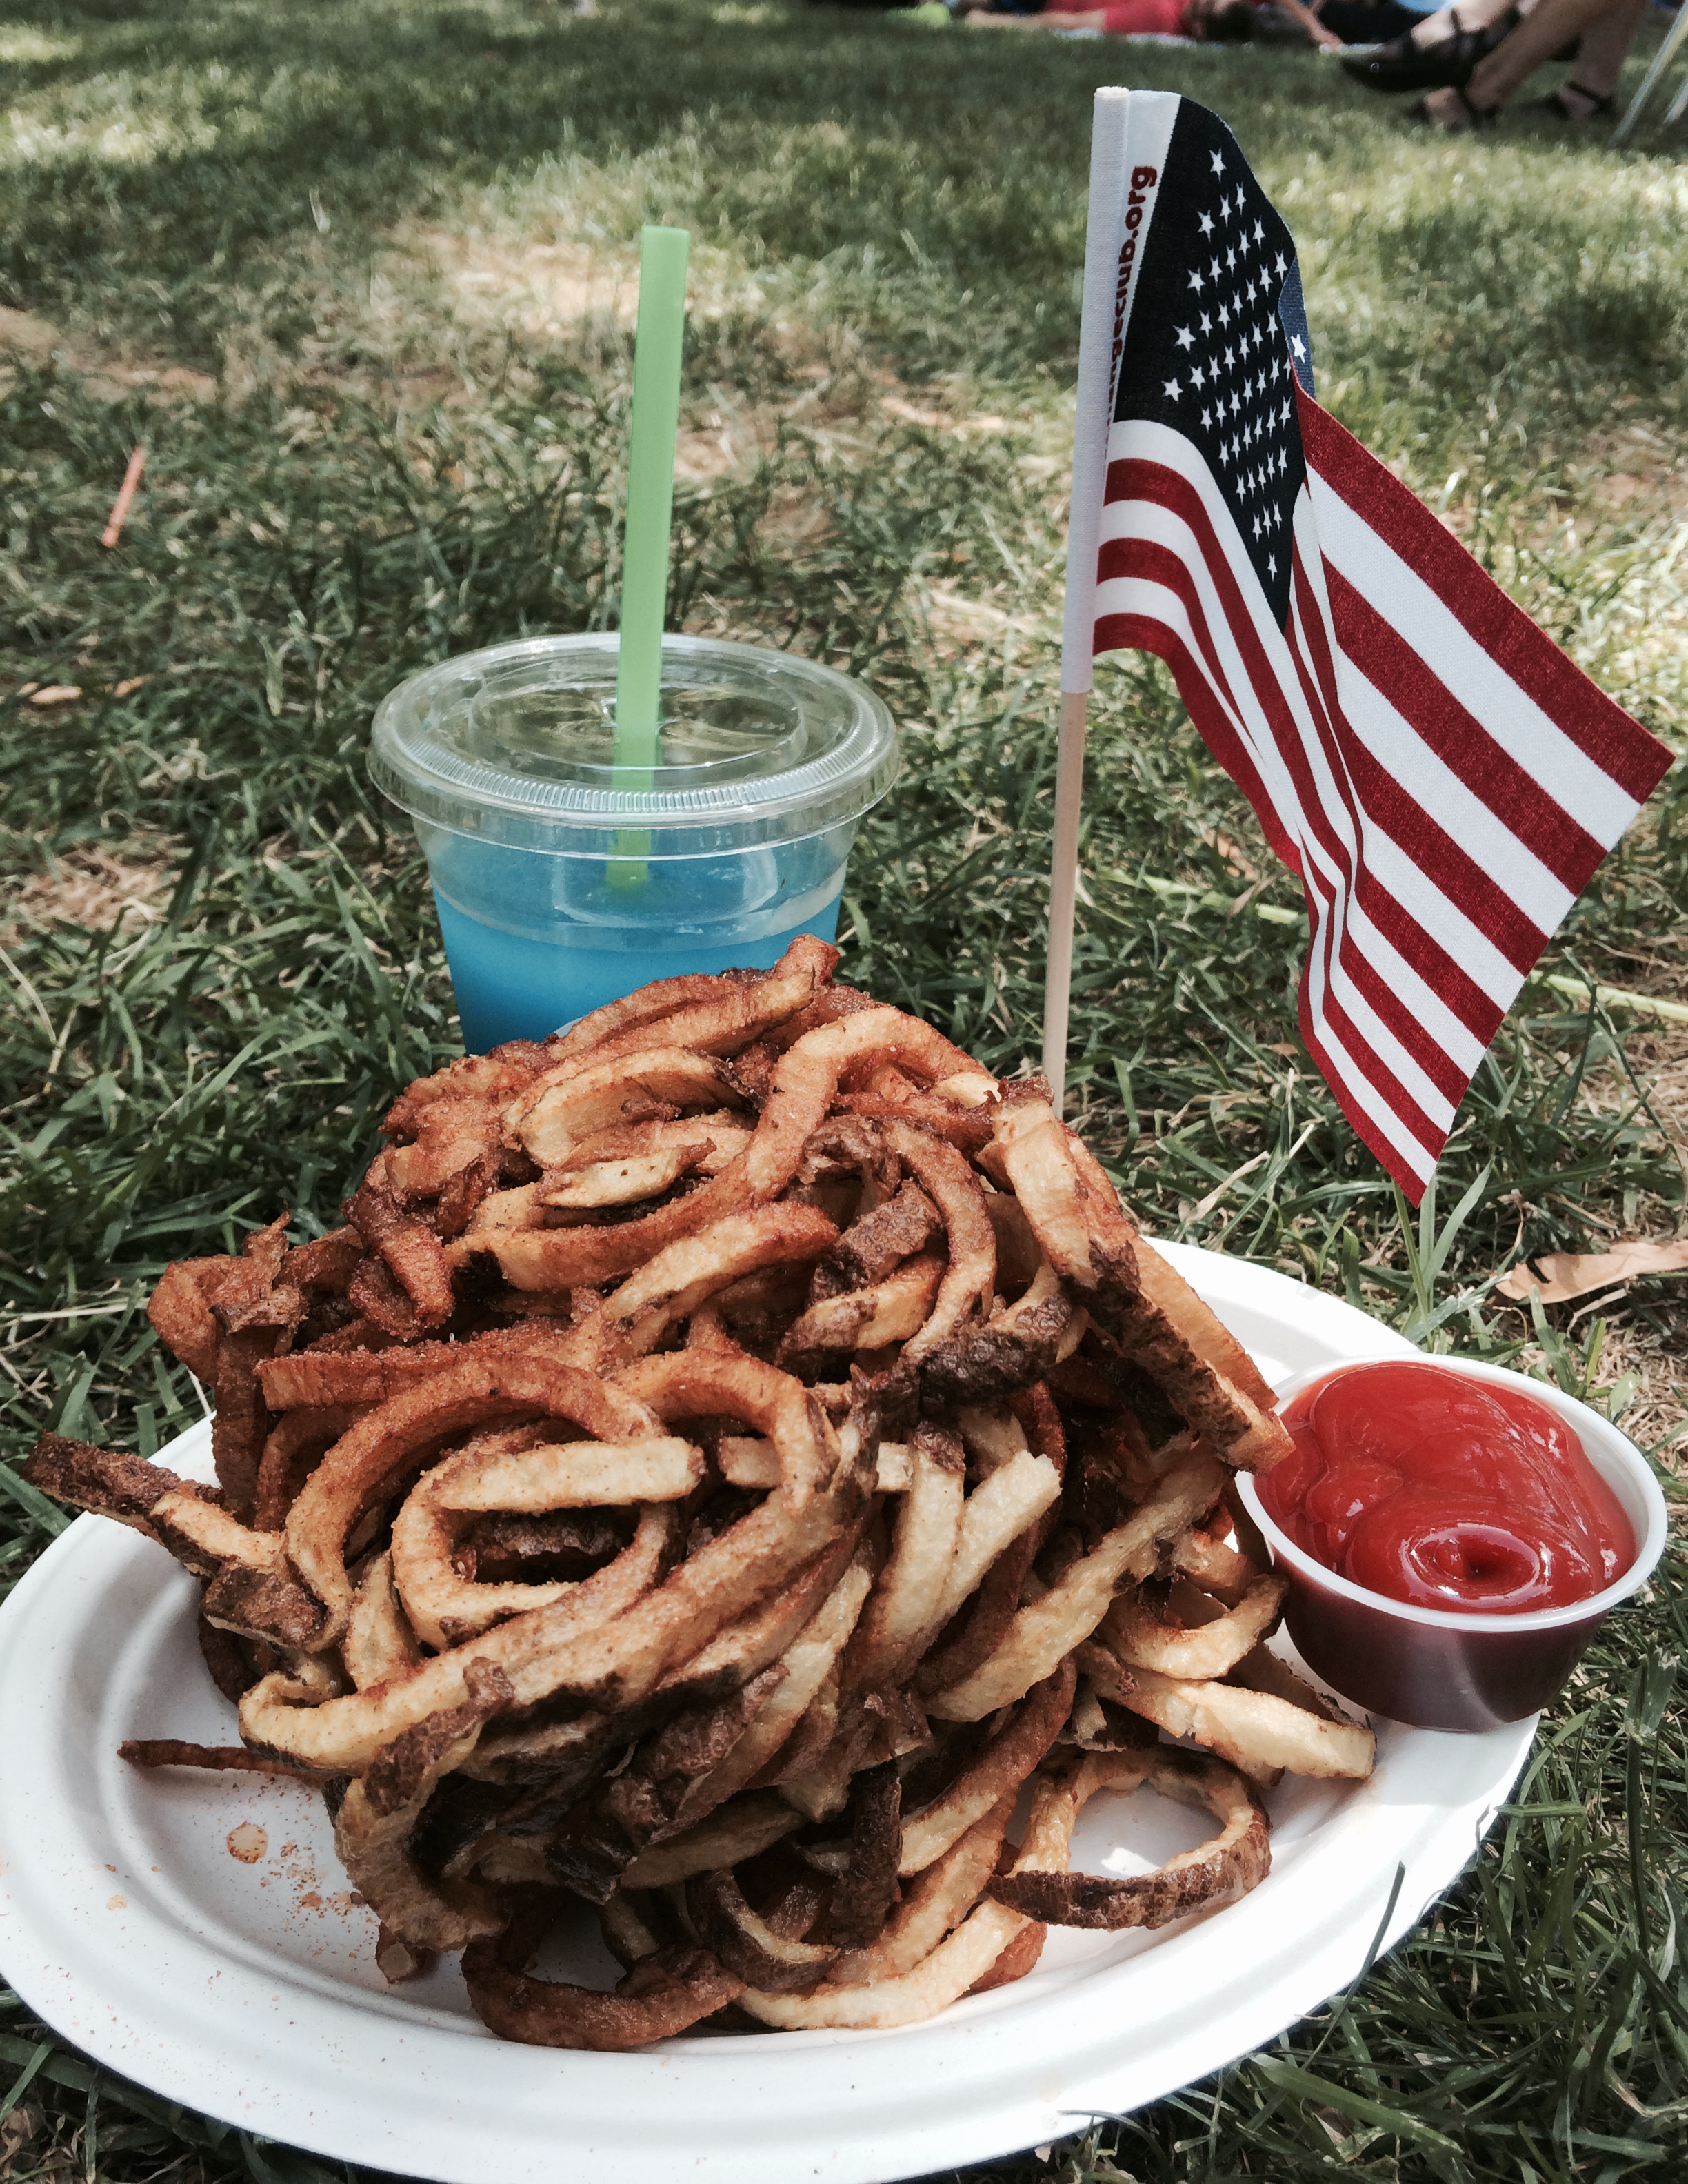 Although not in my top five, I do enjoy curly fries. Sidney and I enjoyed these during the Fourth of July in Walla Walla at Pioneer Park.